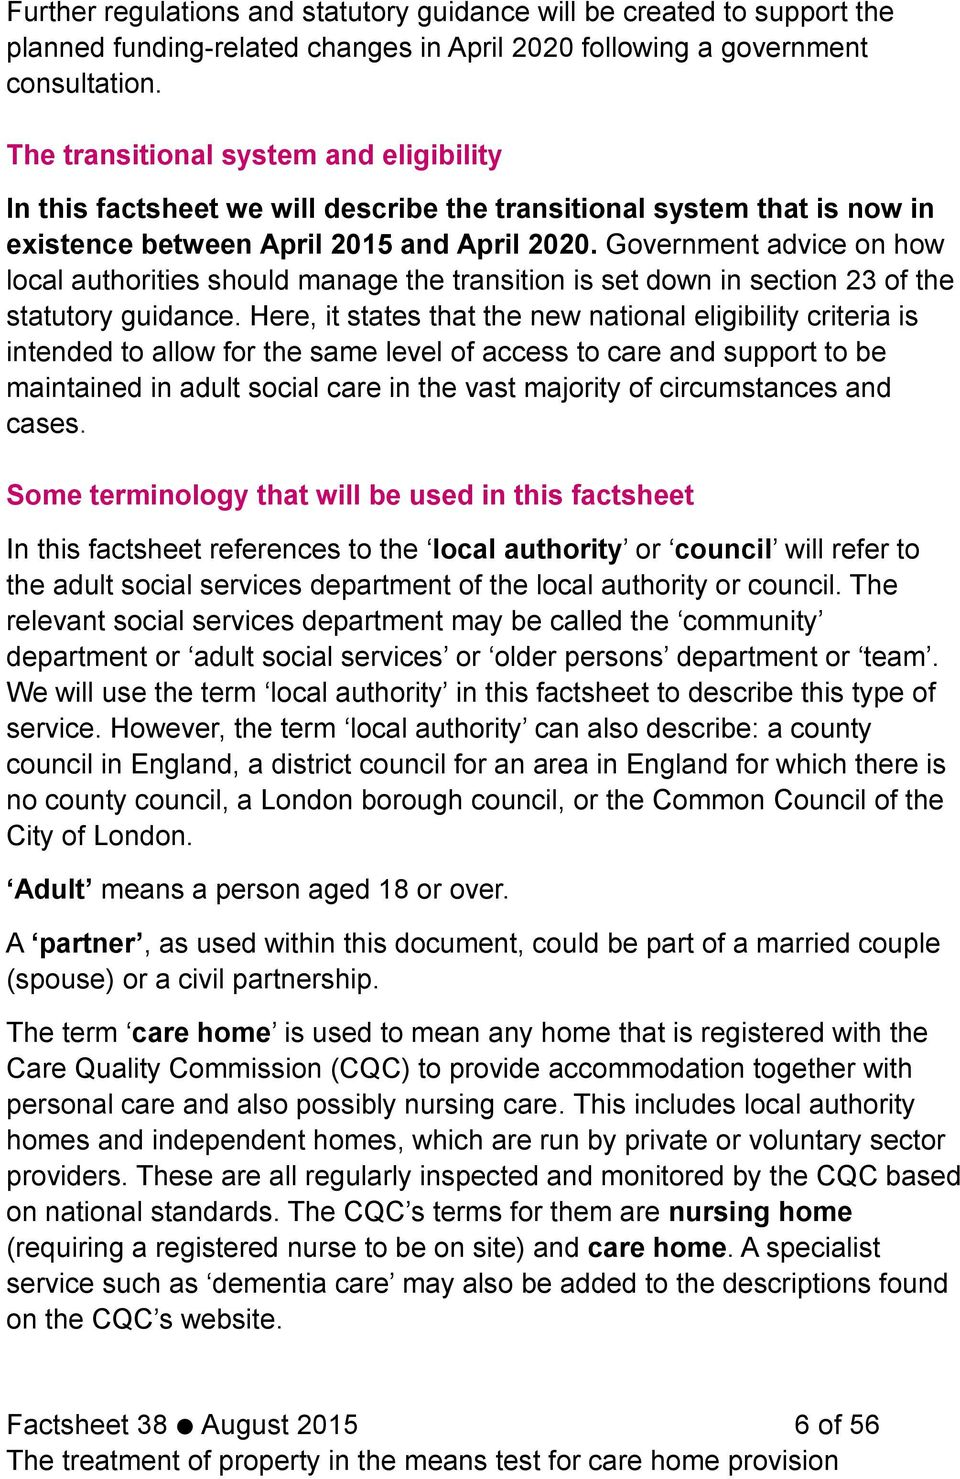 Government advice on how local authorities should manage the transition is set down in section 23 of the statutory guidance.